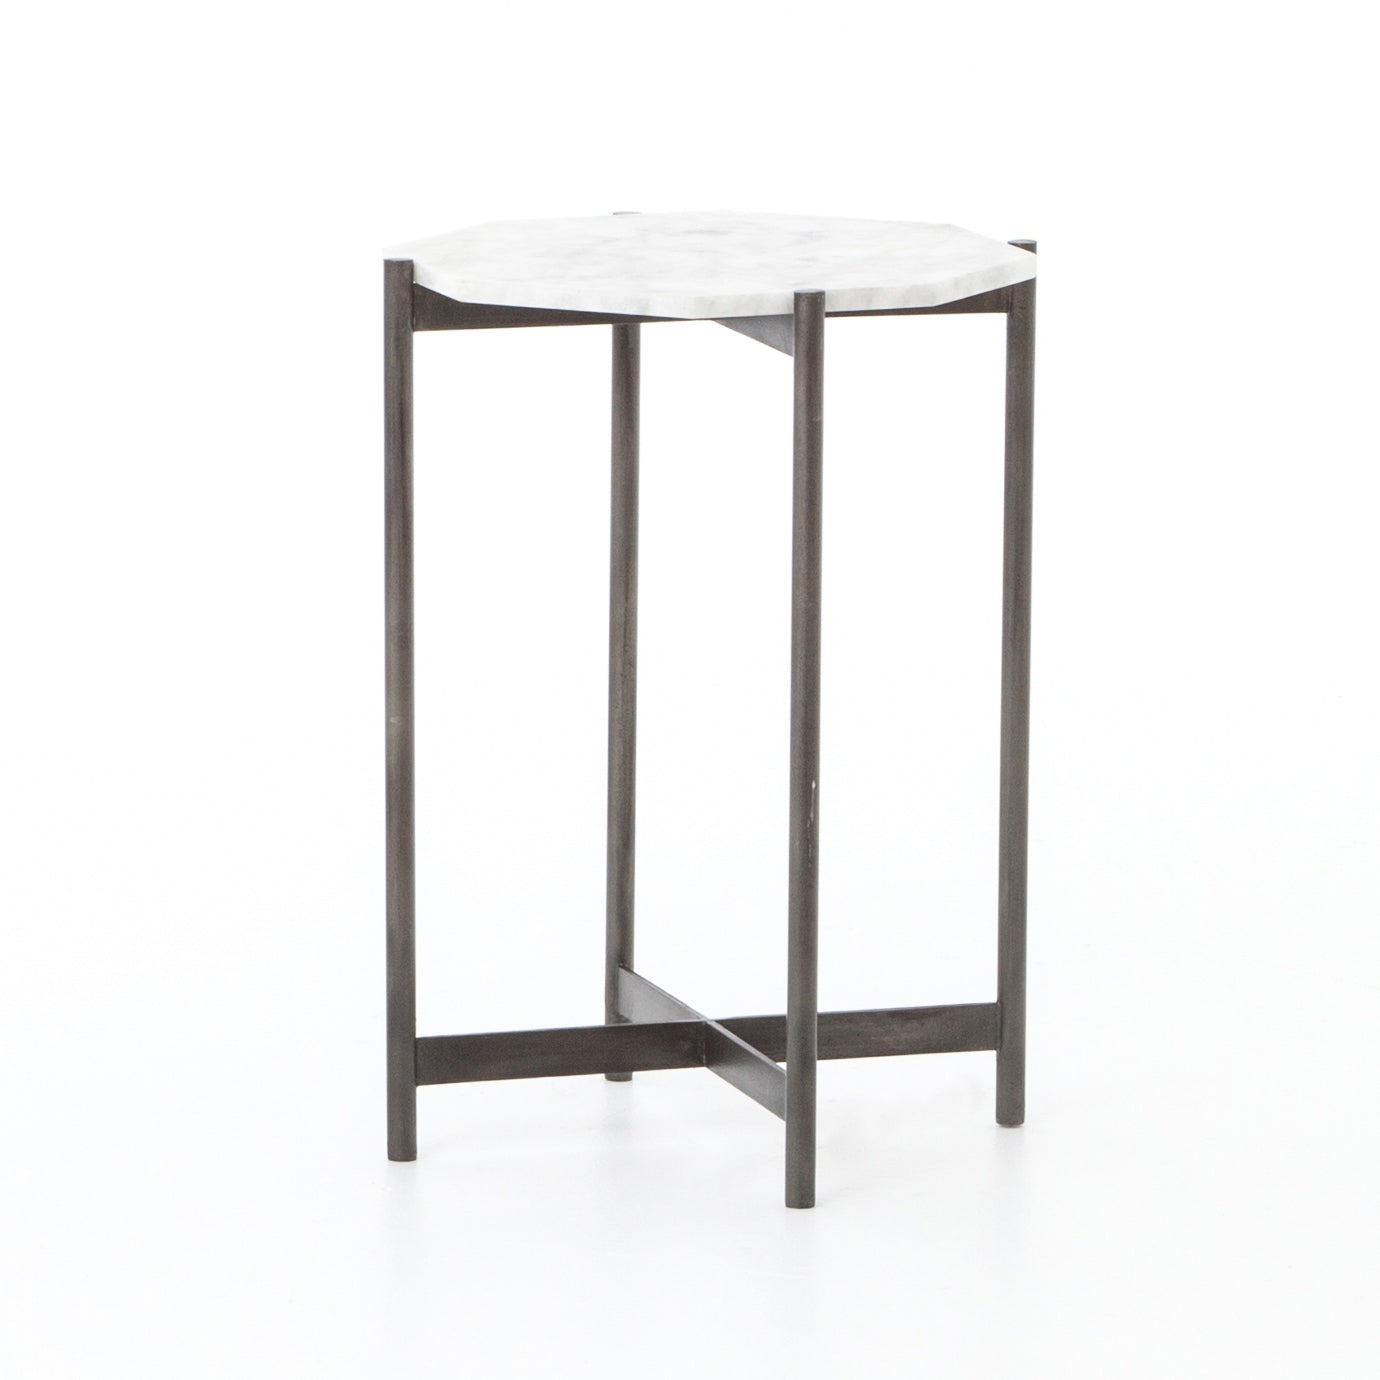 Adair Side Table - Hammered Grey